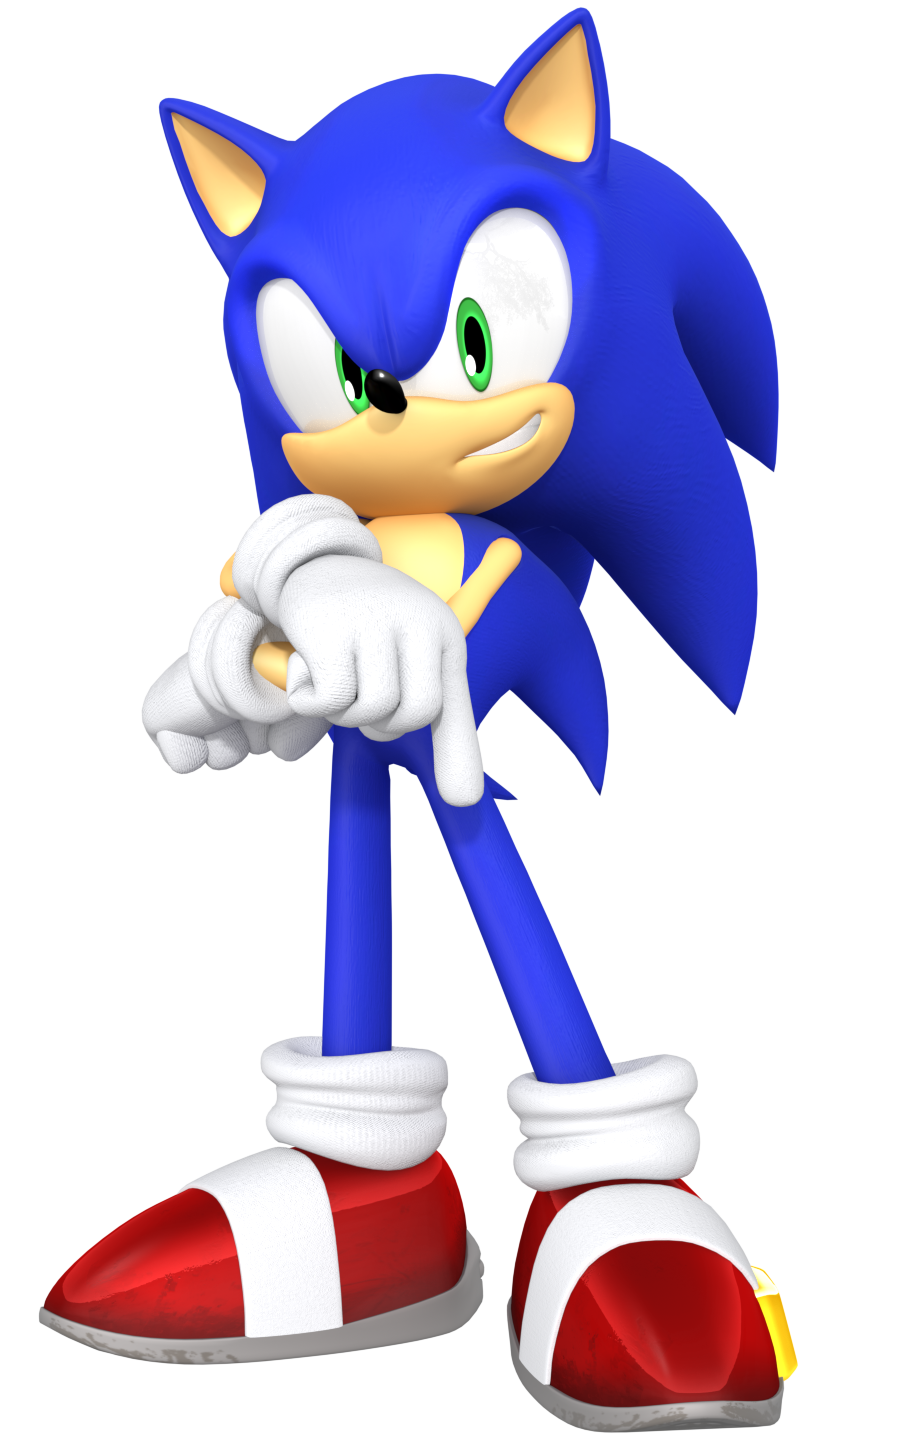 sonic the hedgehog fighters fantendo nintendo fanon wiki fandom powered by wikia. Black Bedroom Furniture Sets. Home Design Ideas